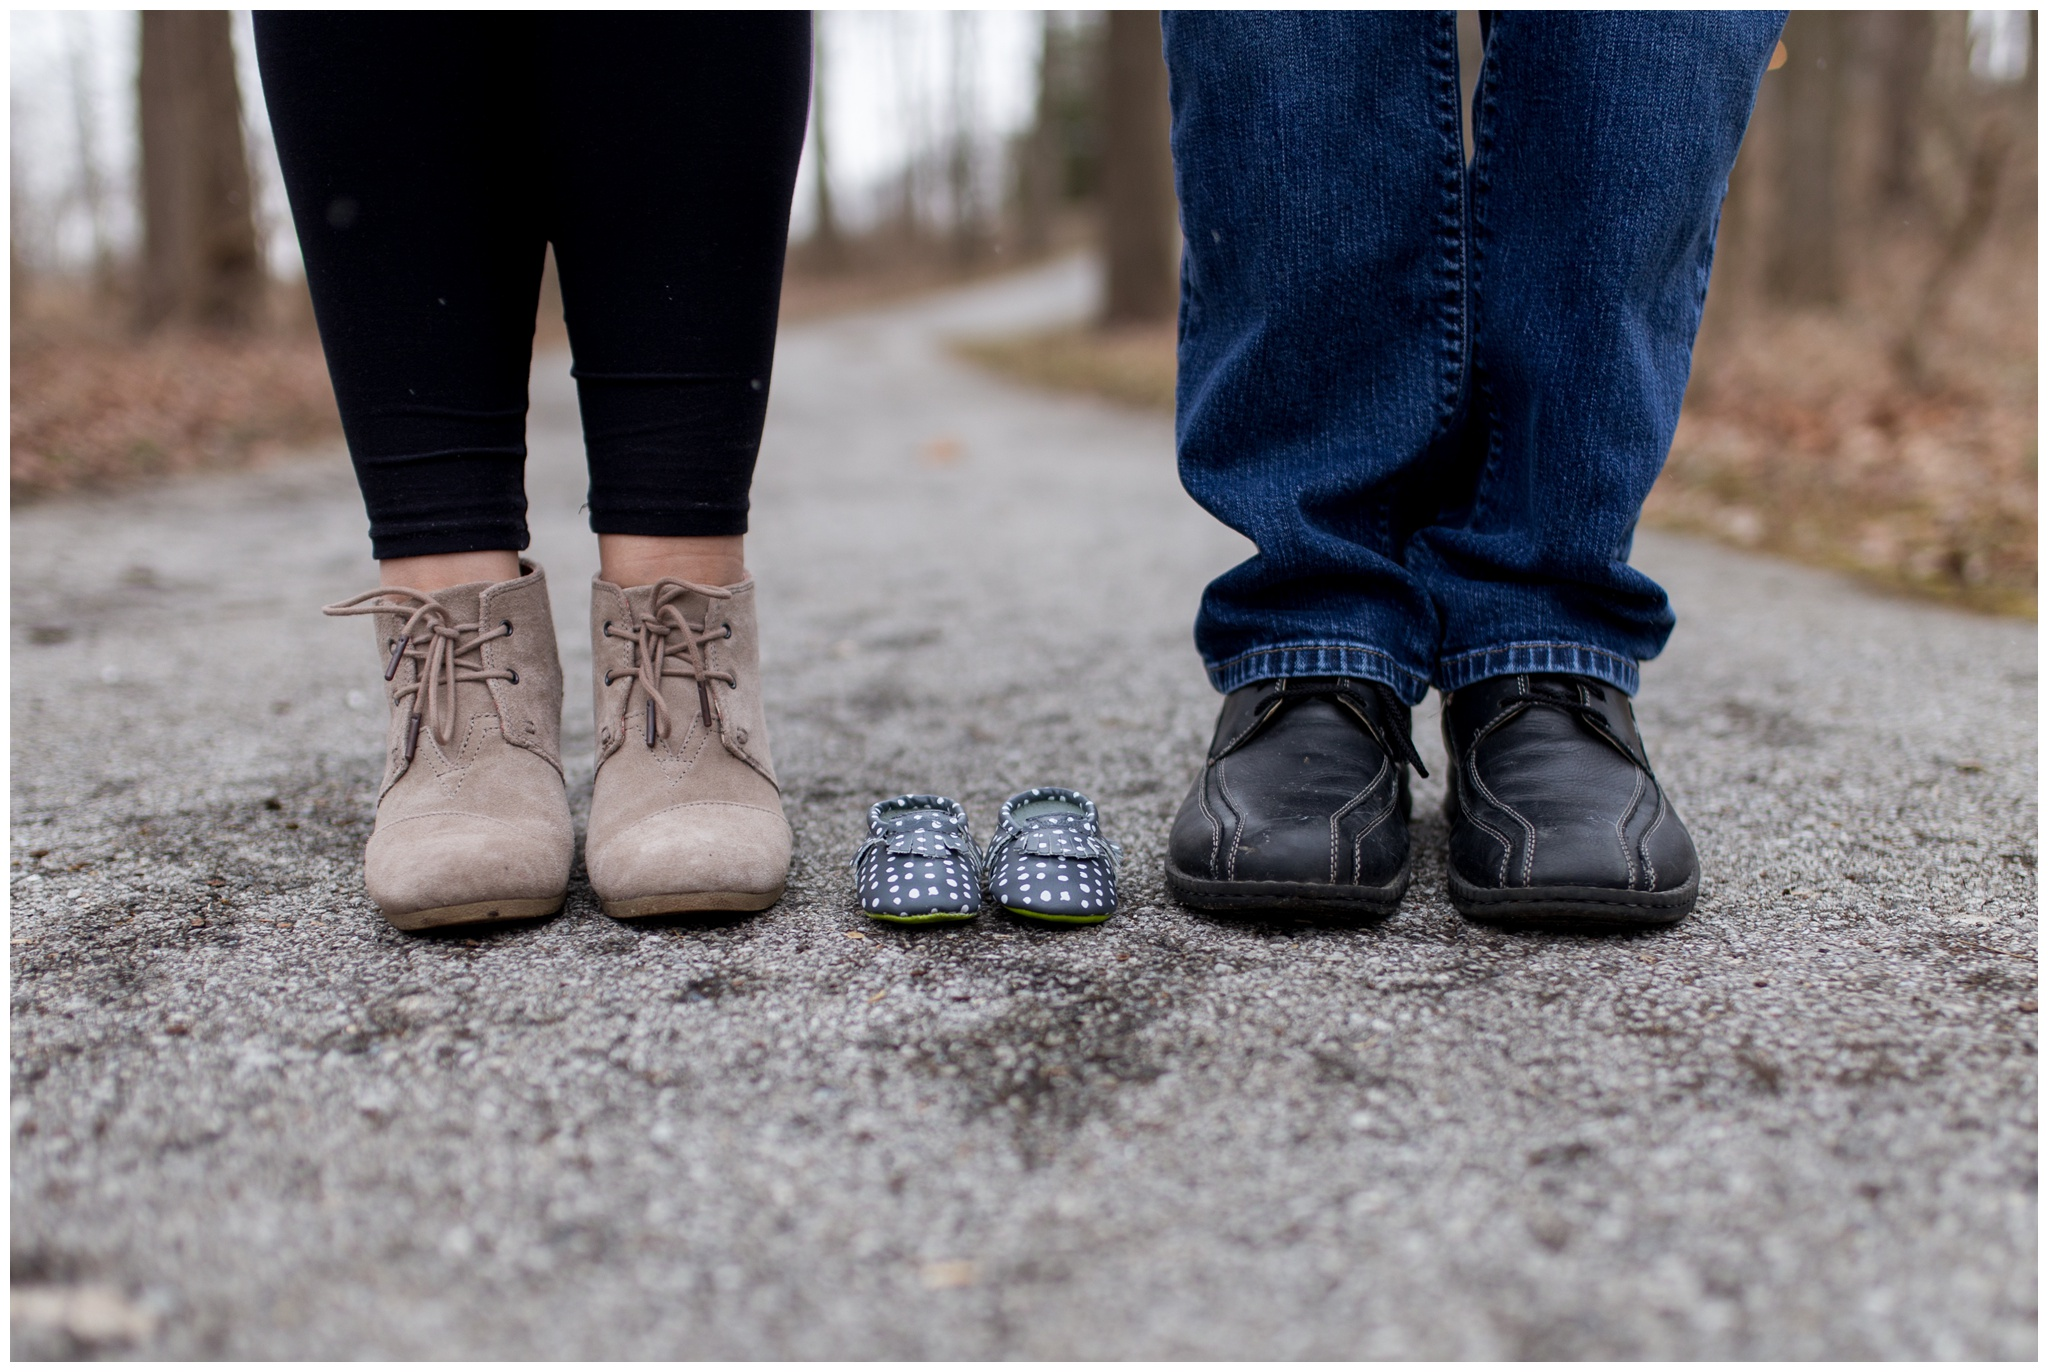 mom and dad's shoes next to baby shoes during Kokomo Indiana maternity session at Jackson Morrow Park